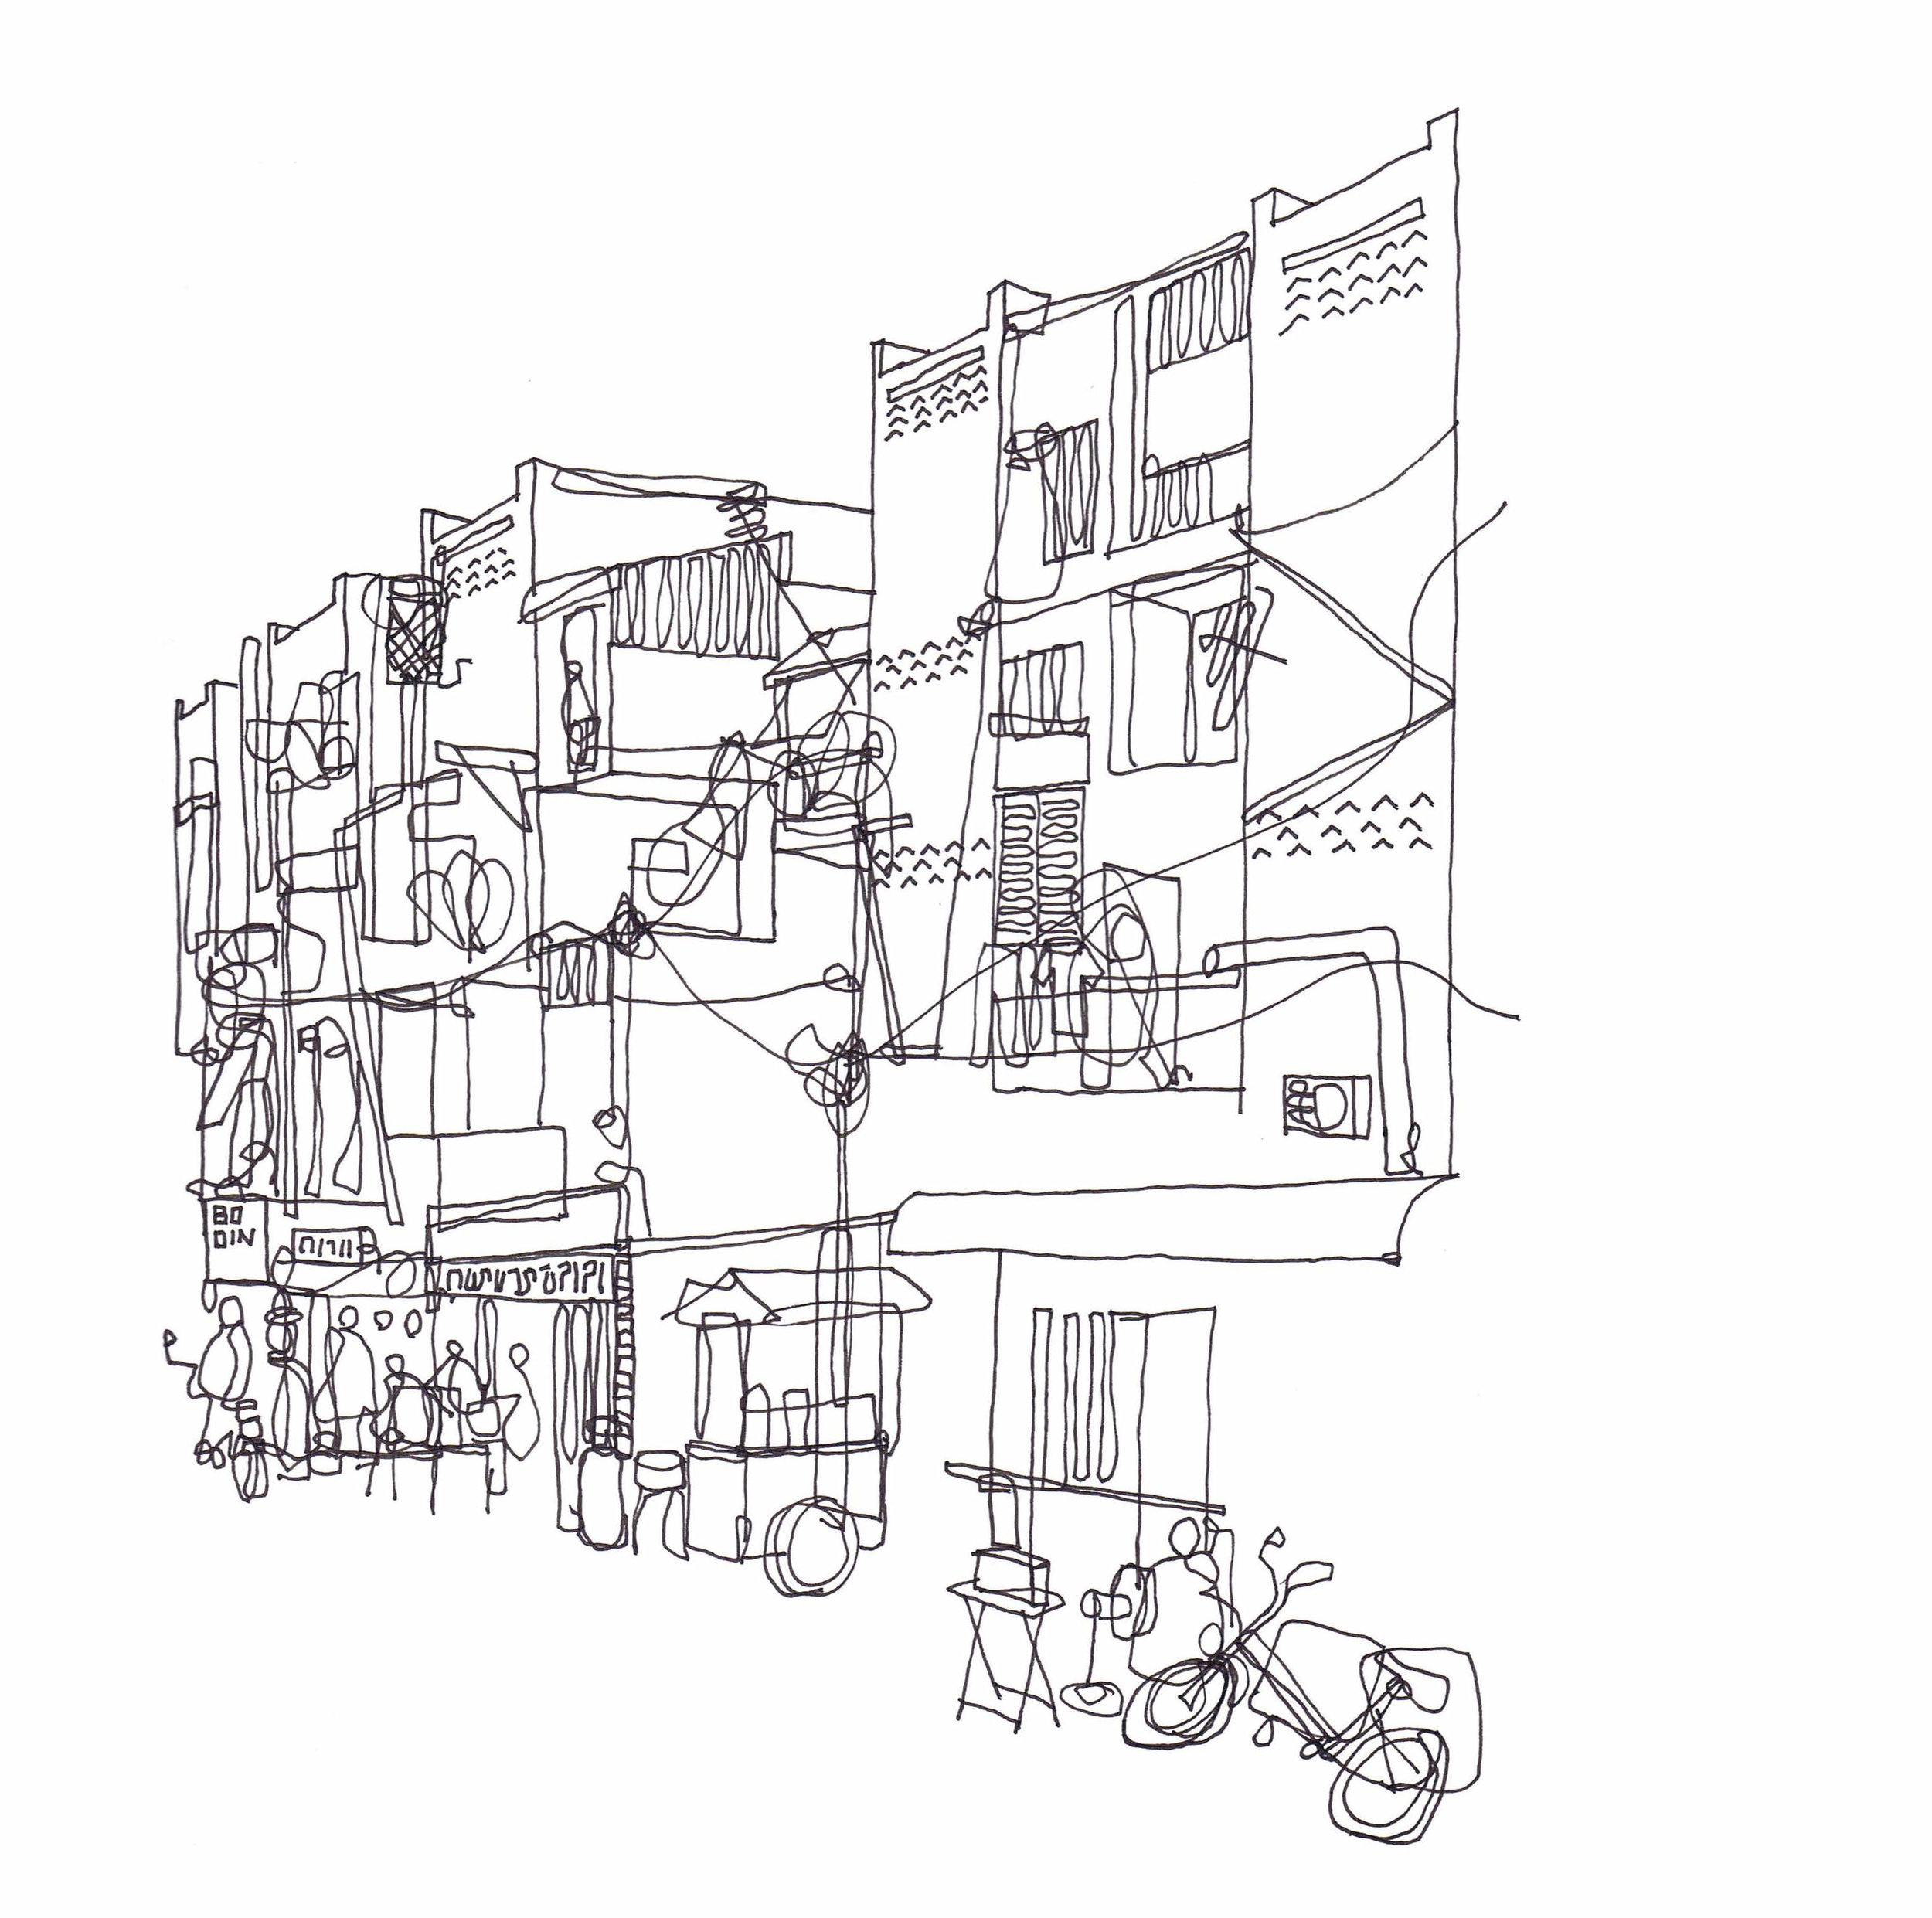 cambodia sketches 2015_Page_19.jpg